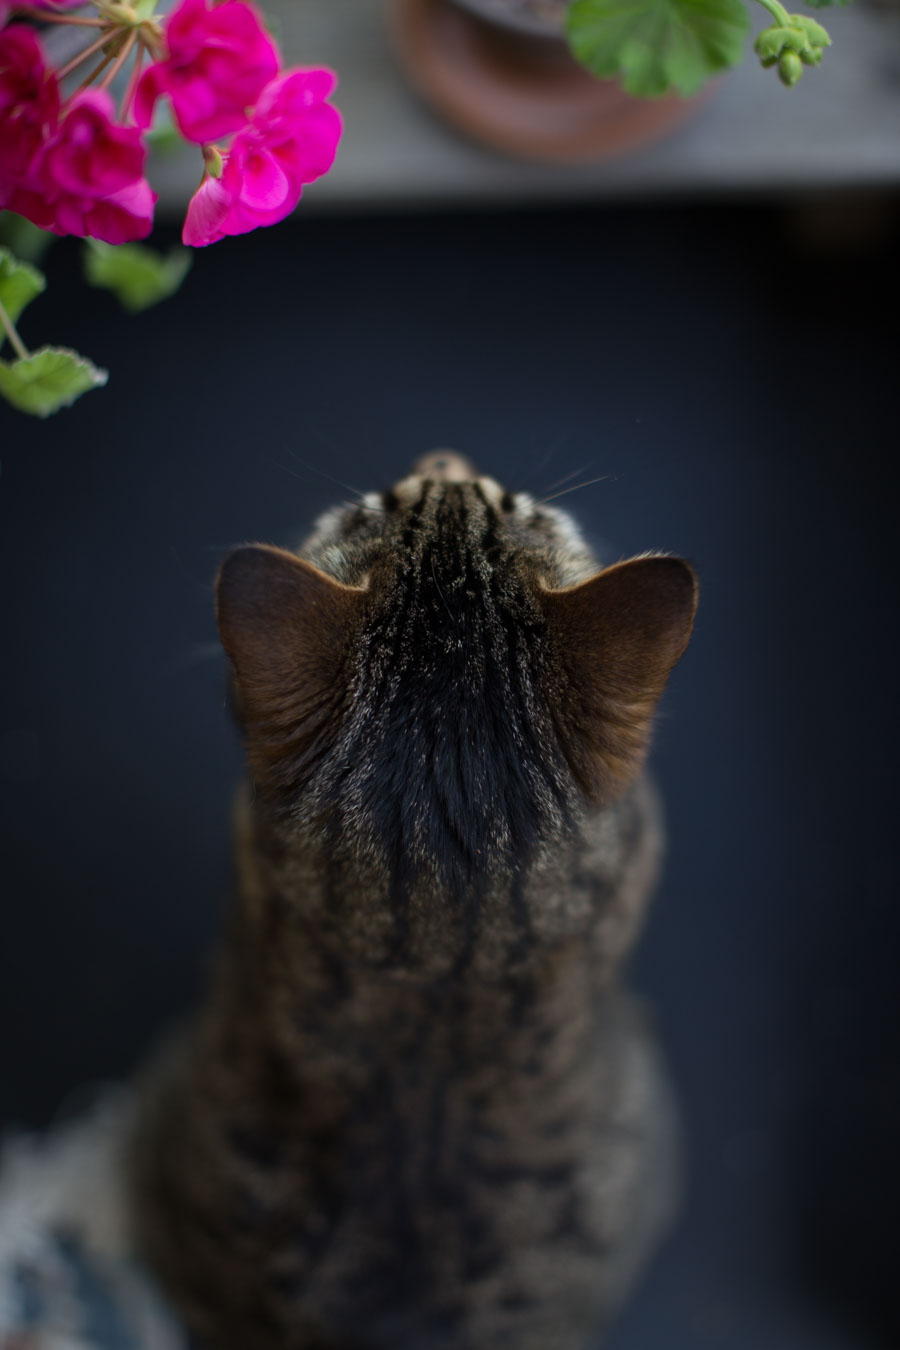 Tabby cat and flowers